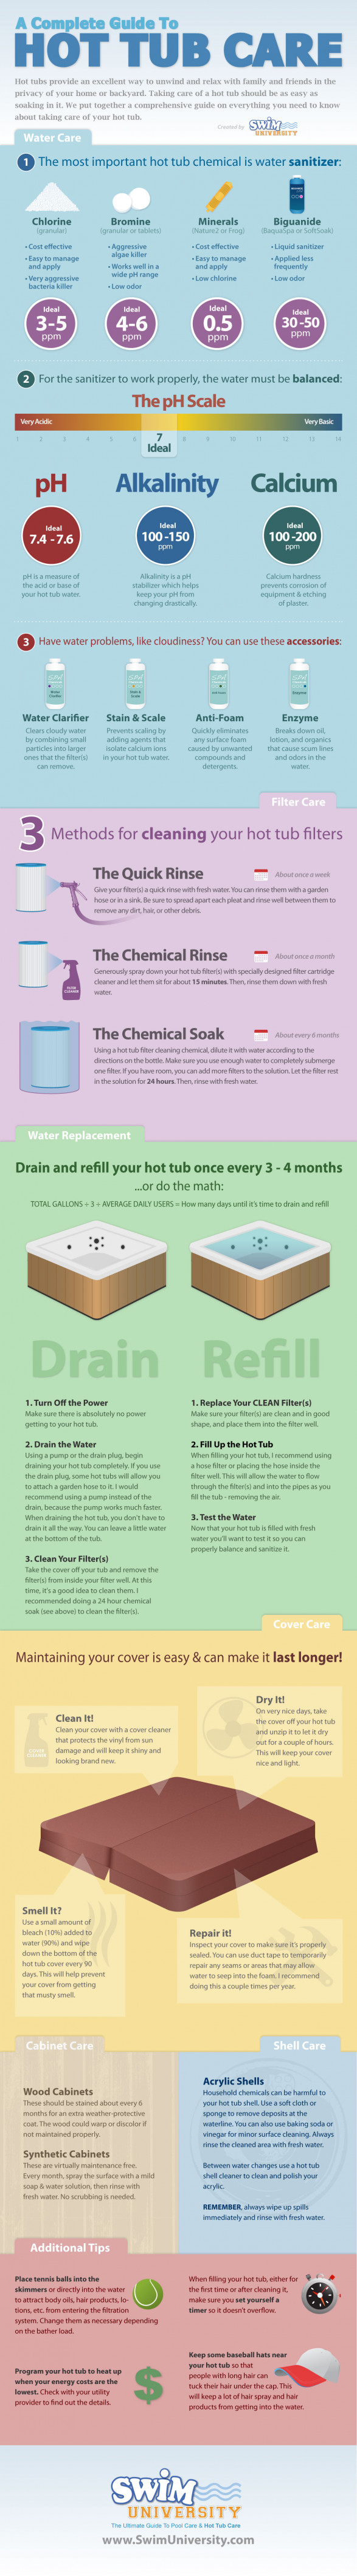 A Complete Guide to Hot Tub Care